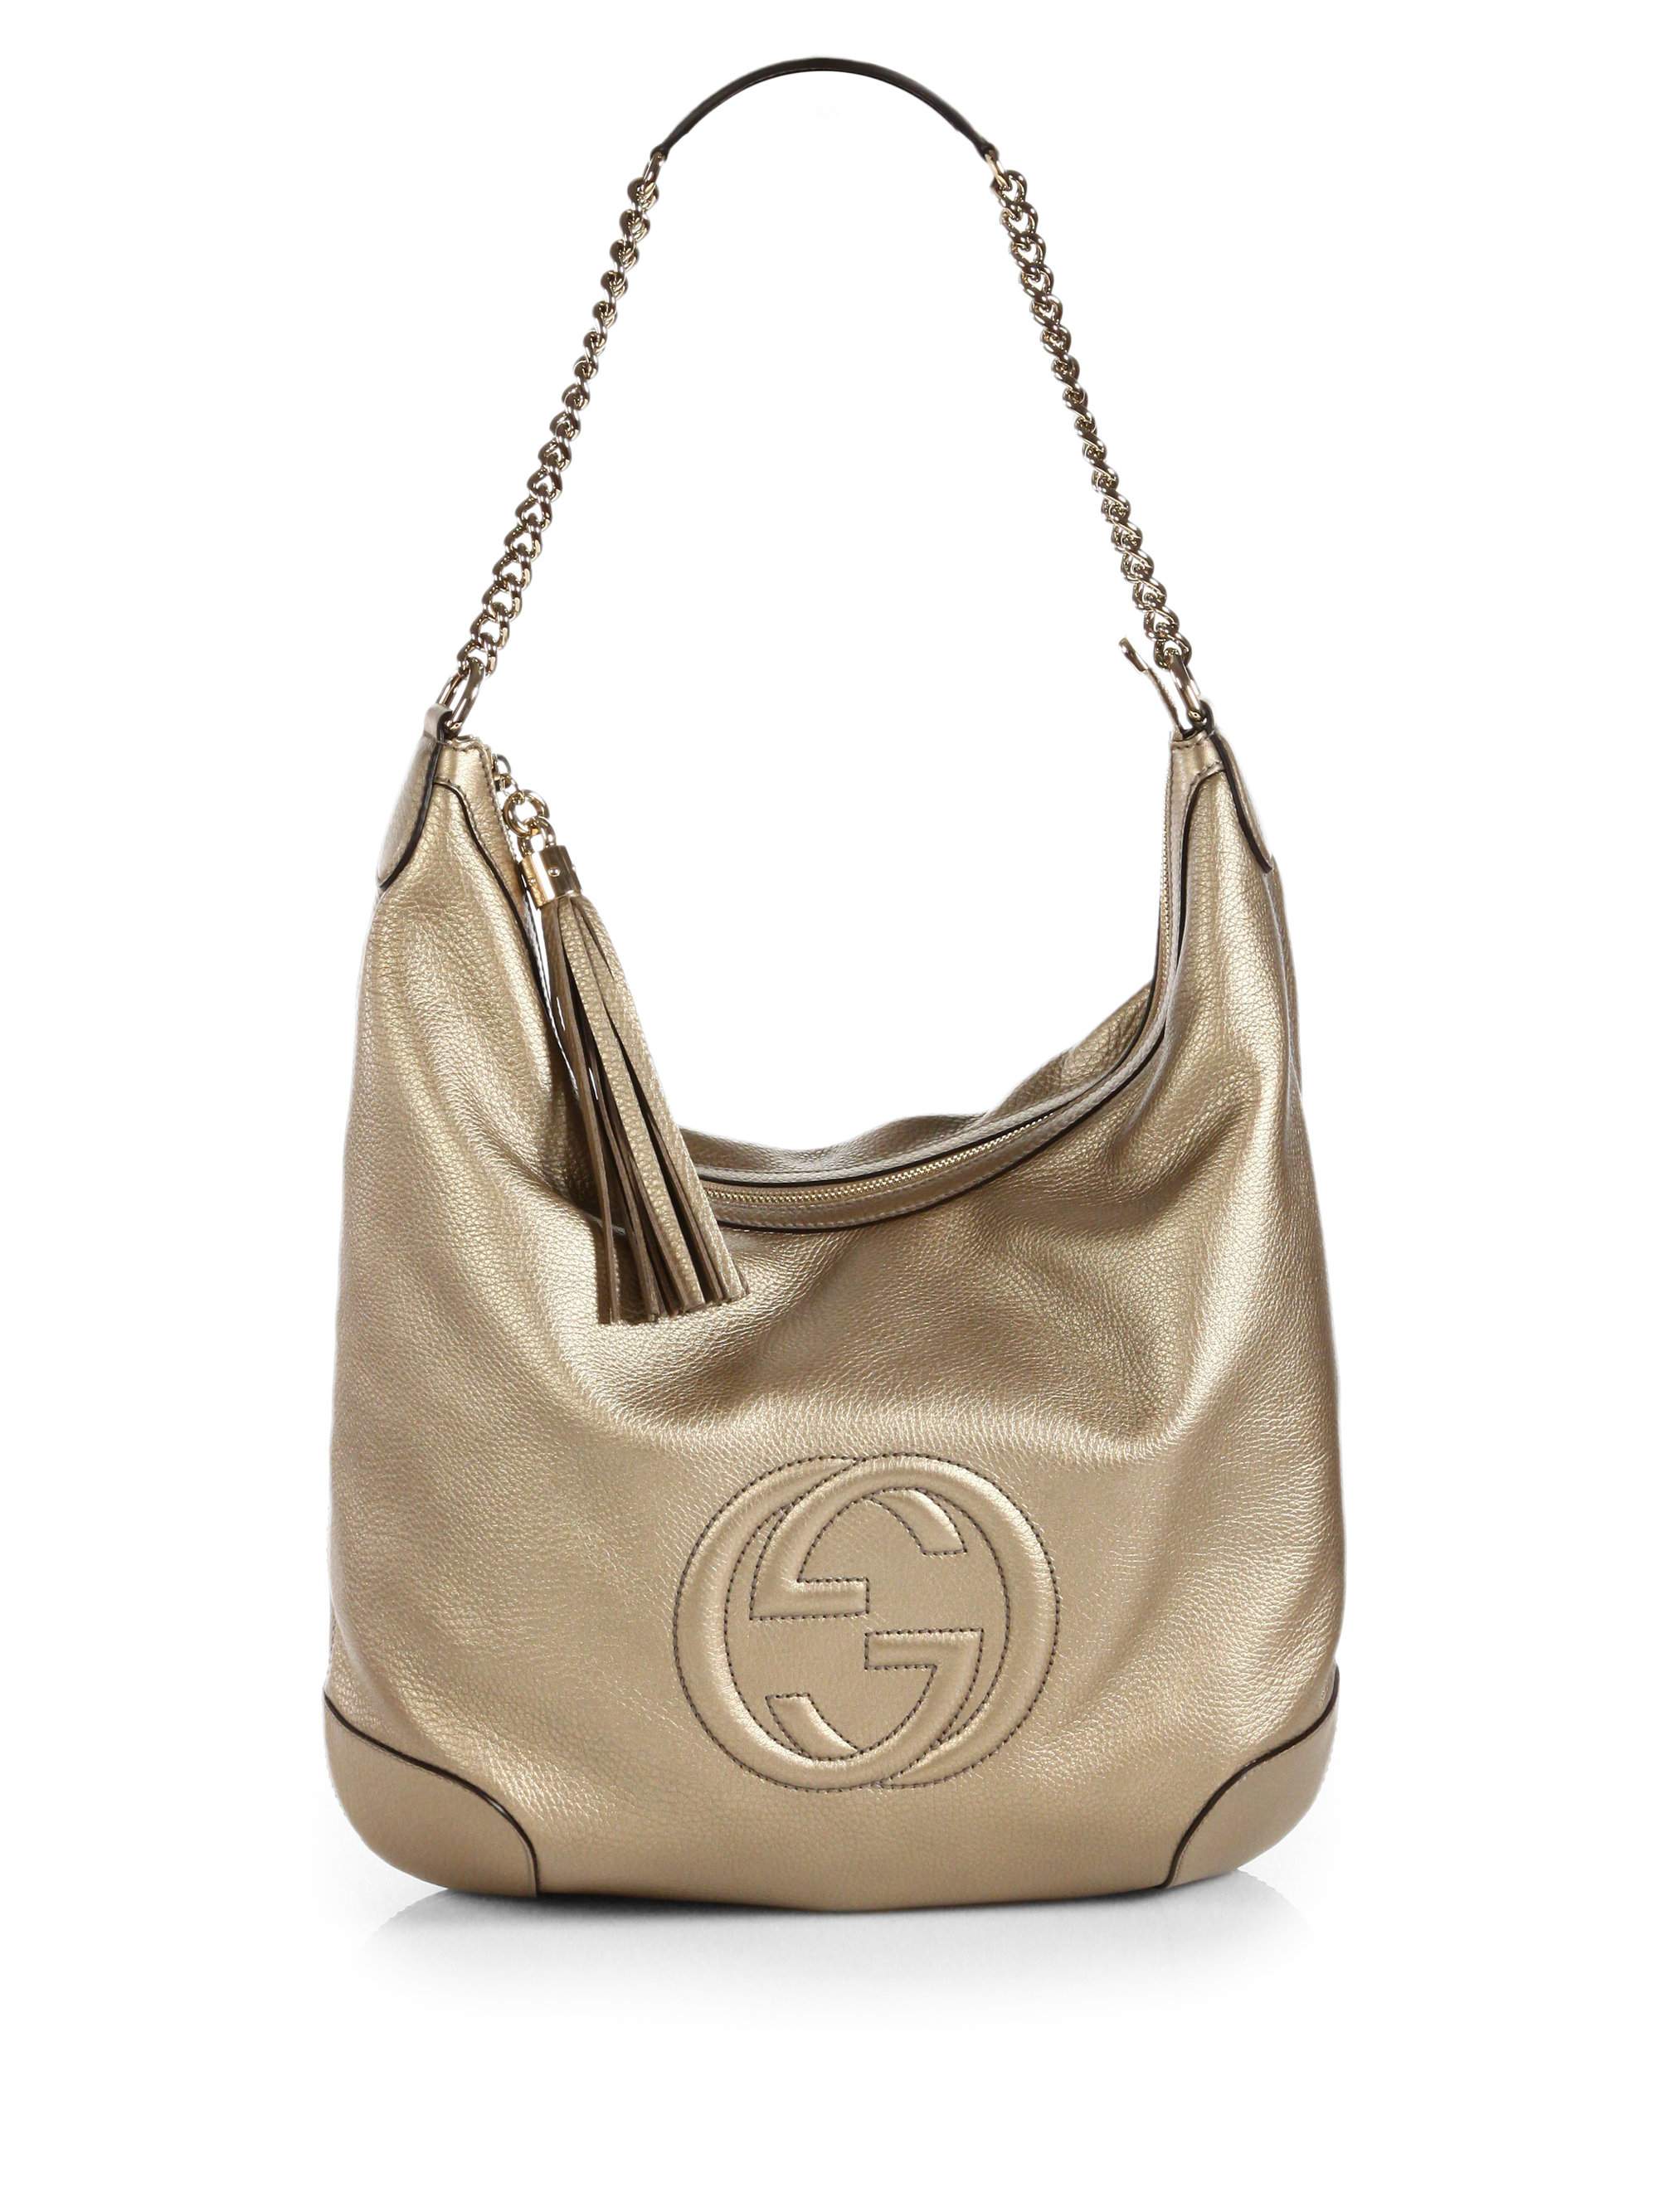 bd1b6ce124d Gucci Soho Metallic Leather Chain Shoulder Bag in Metallic - Lyst